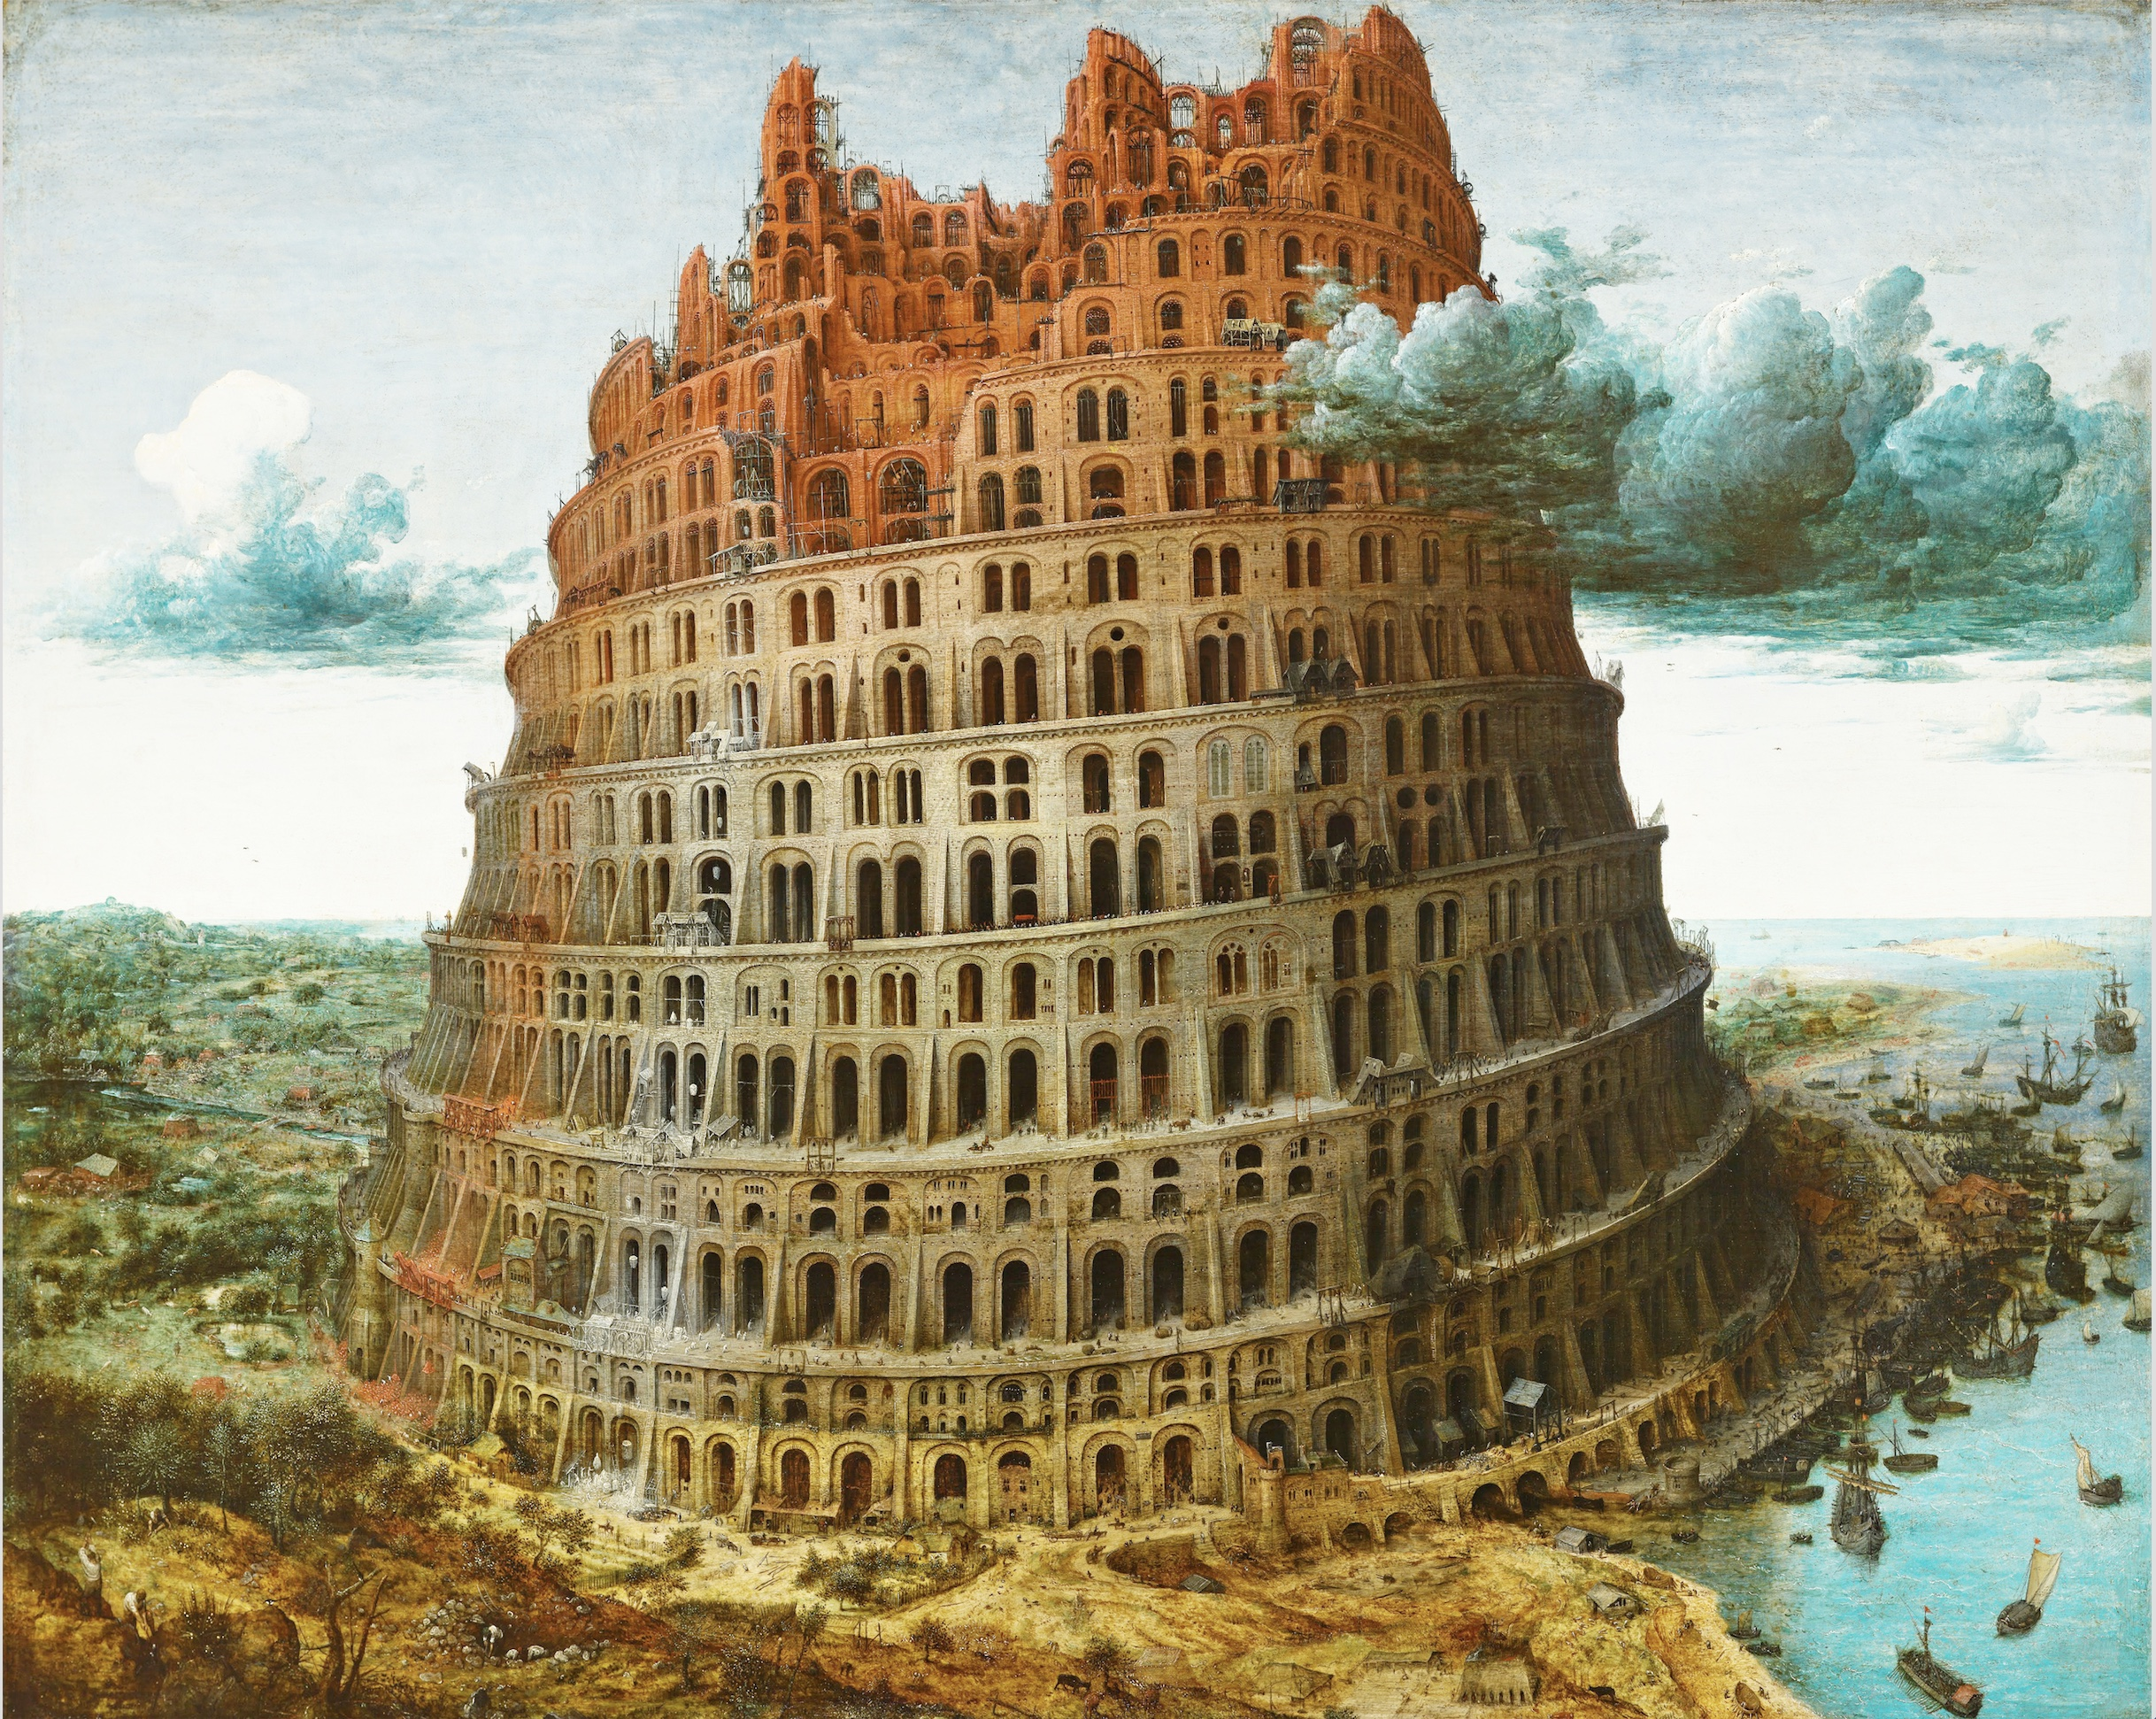 bridge of babel (2009) – world premiere